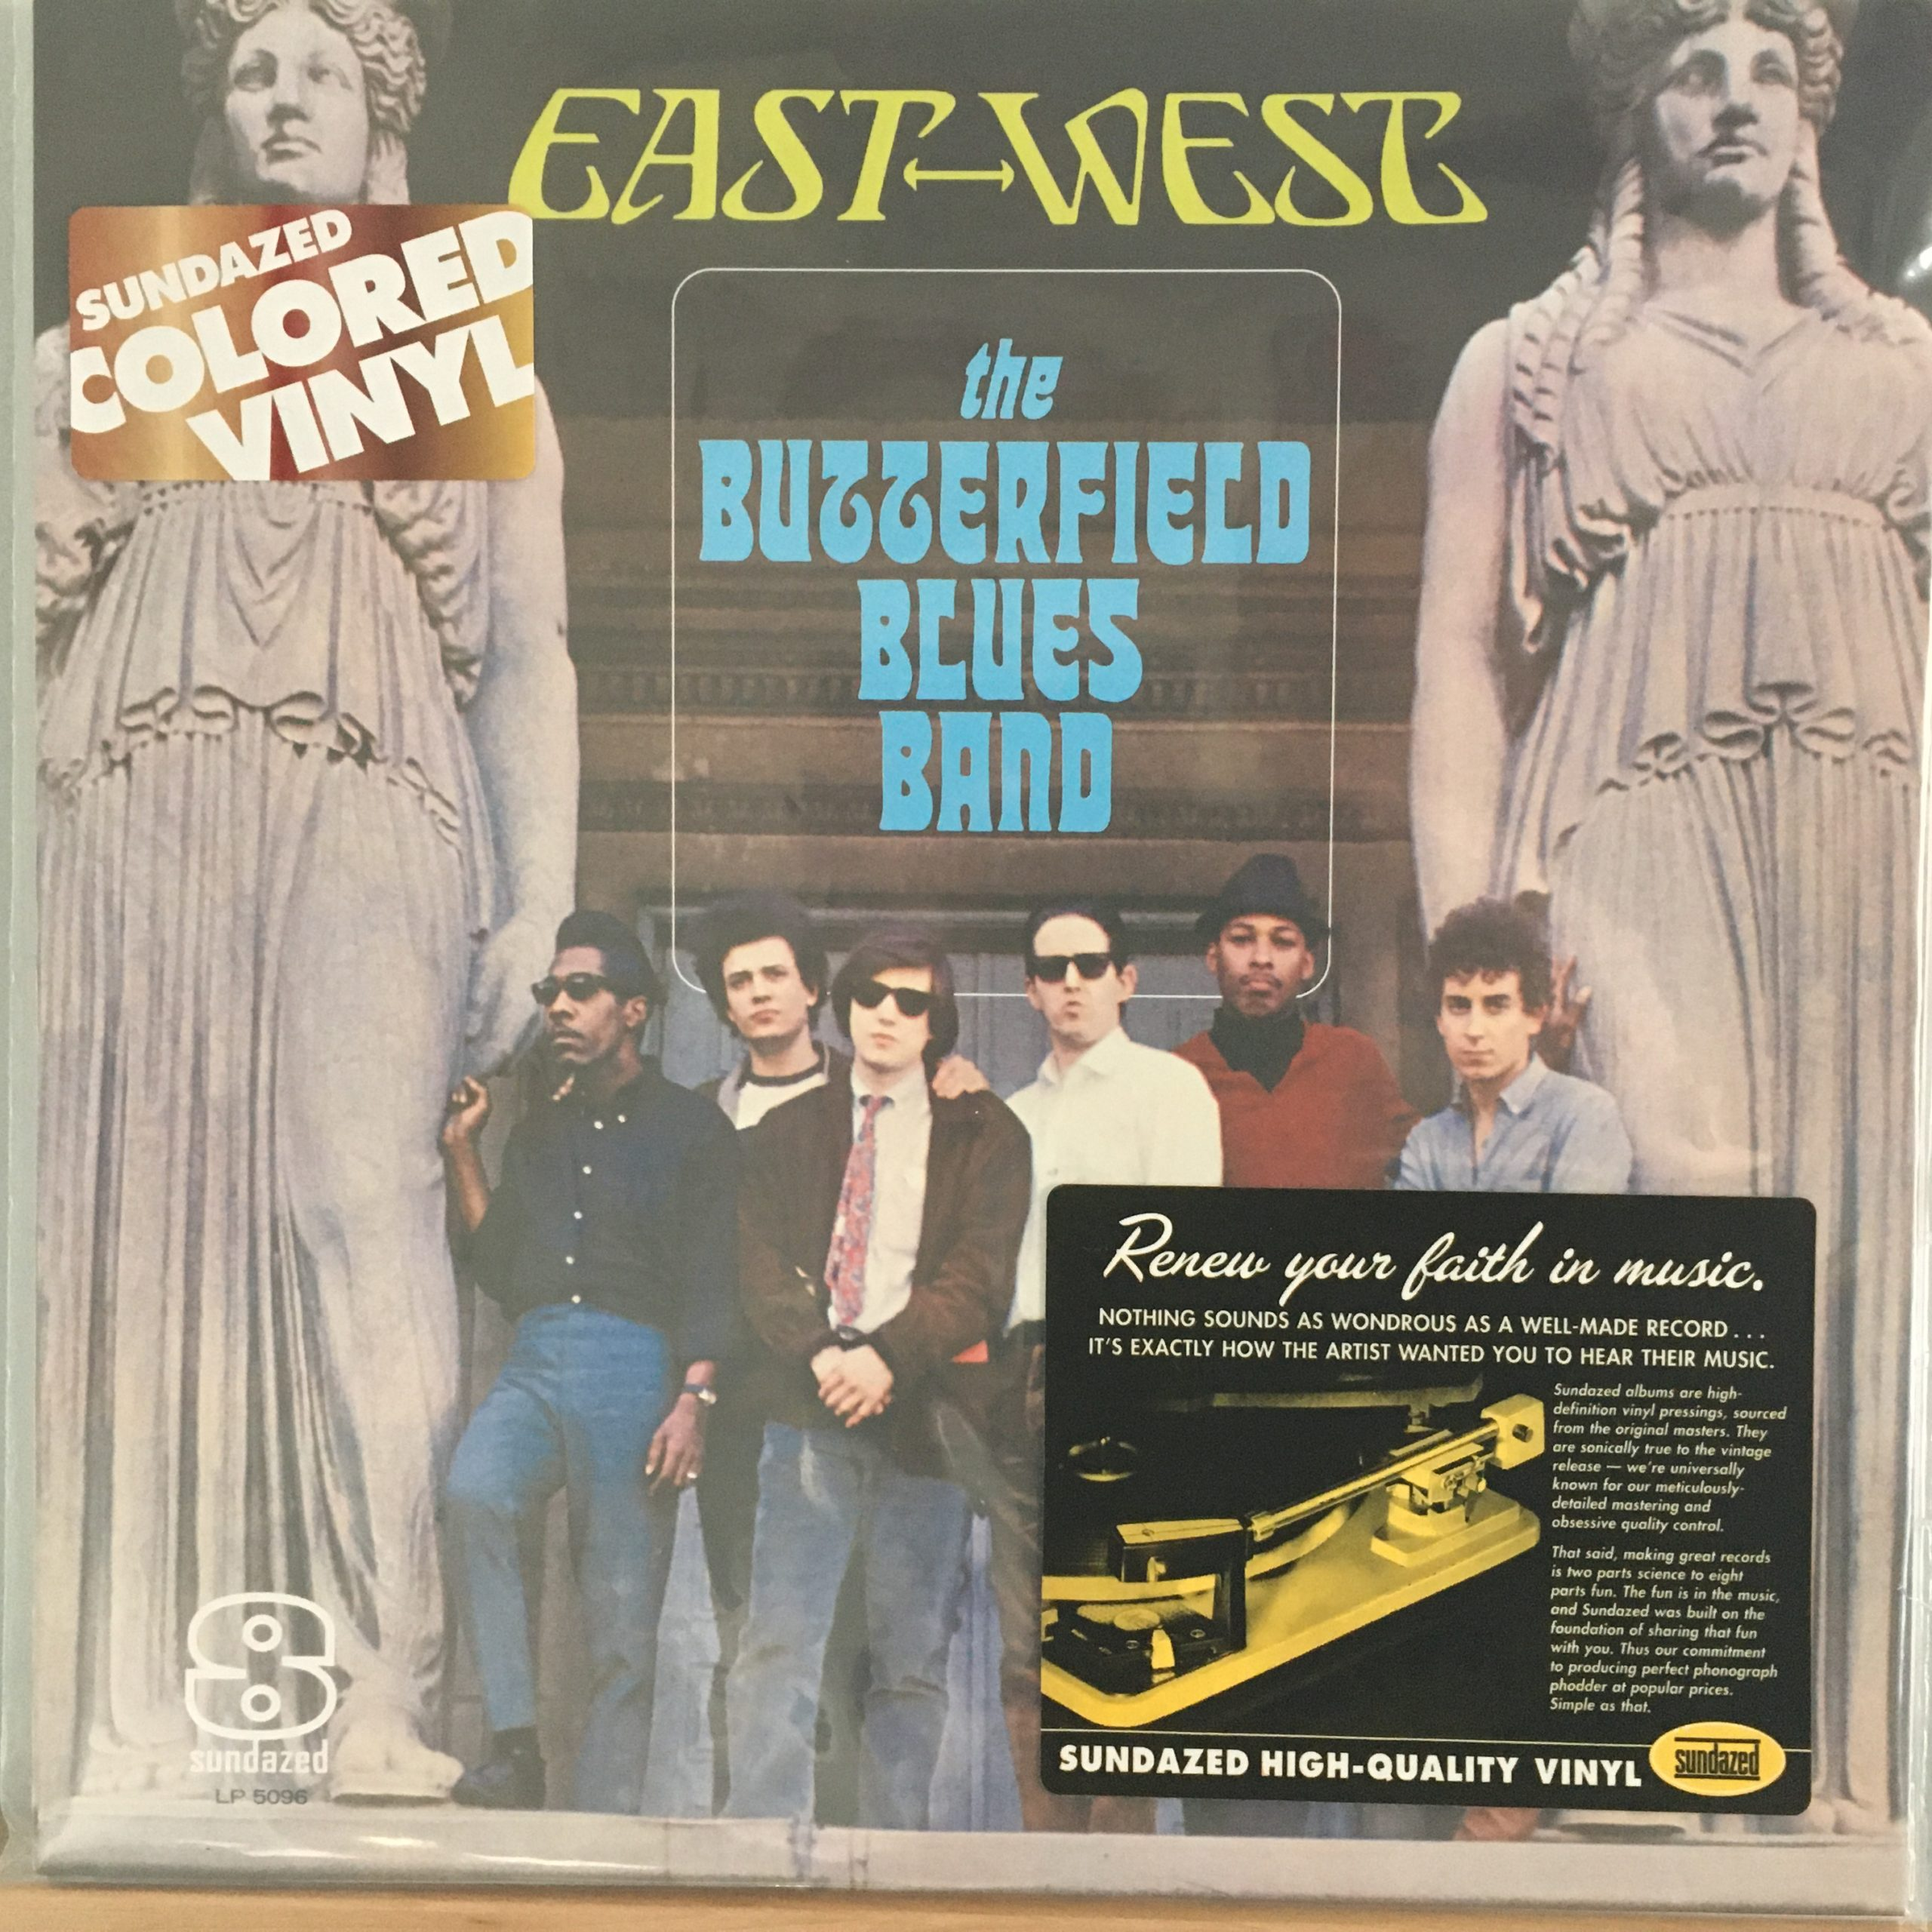 East-West cover with Sundazed promo stickers